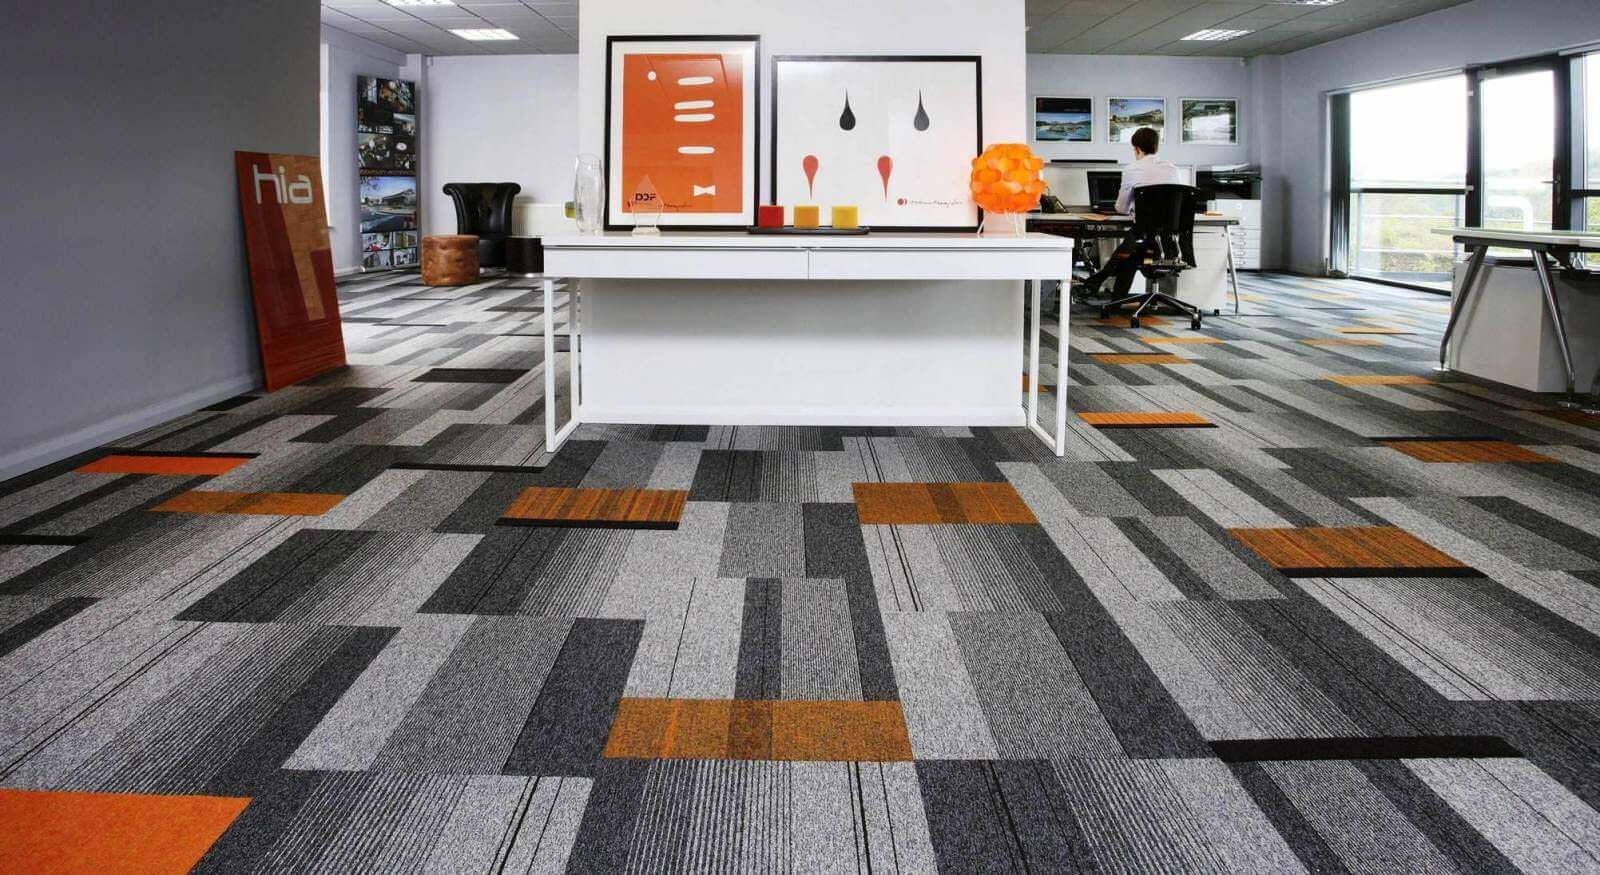 Office floor designs office design ideas pinterest floor burmatex balance atomic carpet tiles with splashes of orange structure bonded ibbotson architects derbyshire dailygadgetfo Choice Image